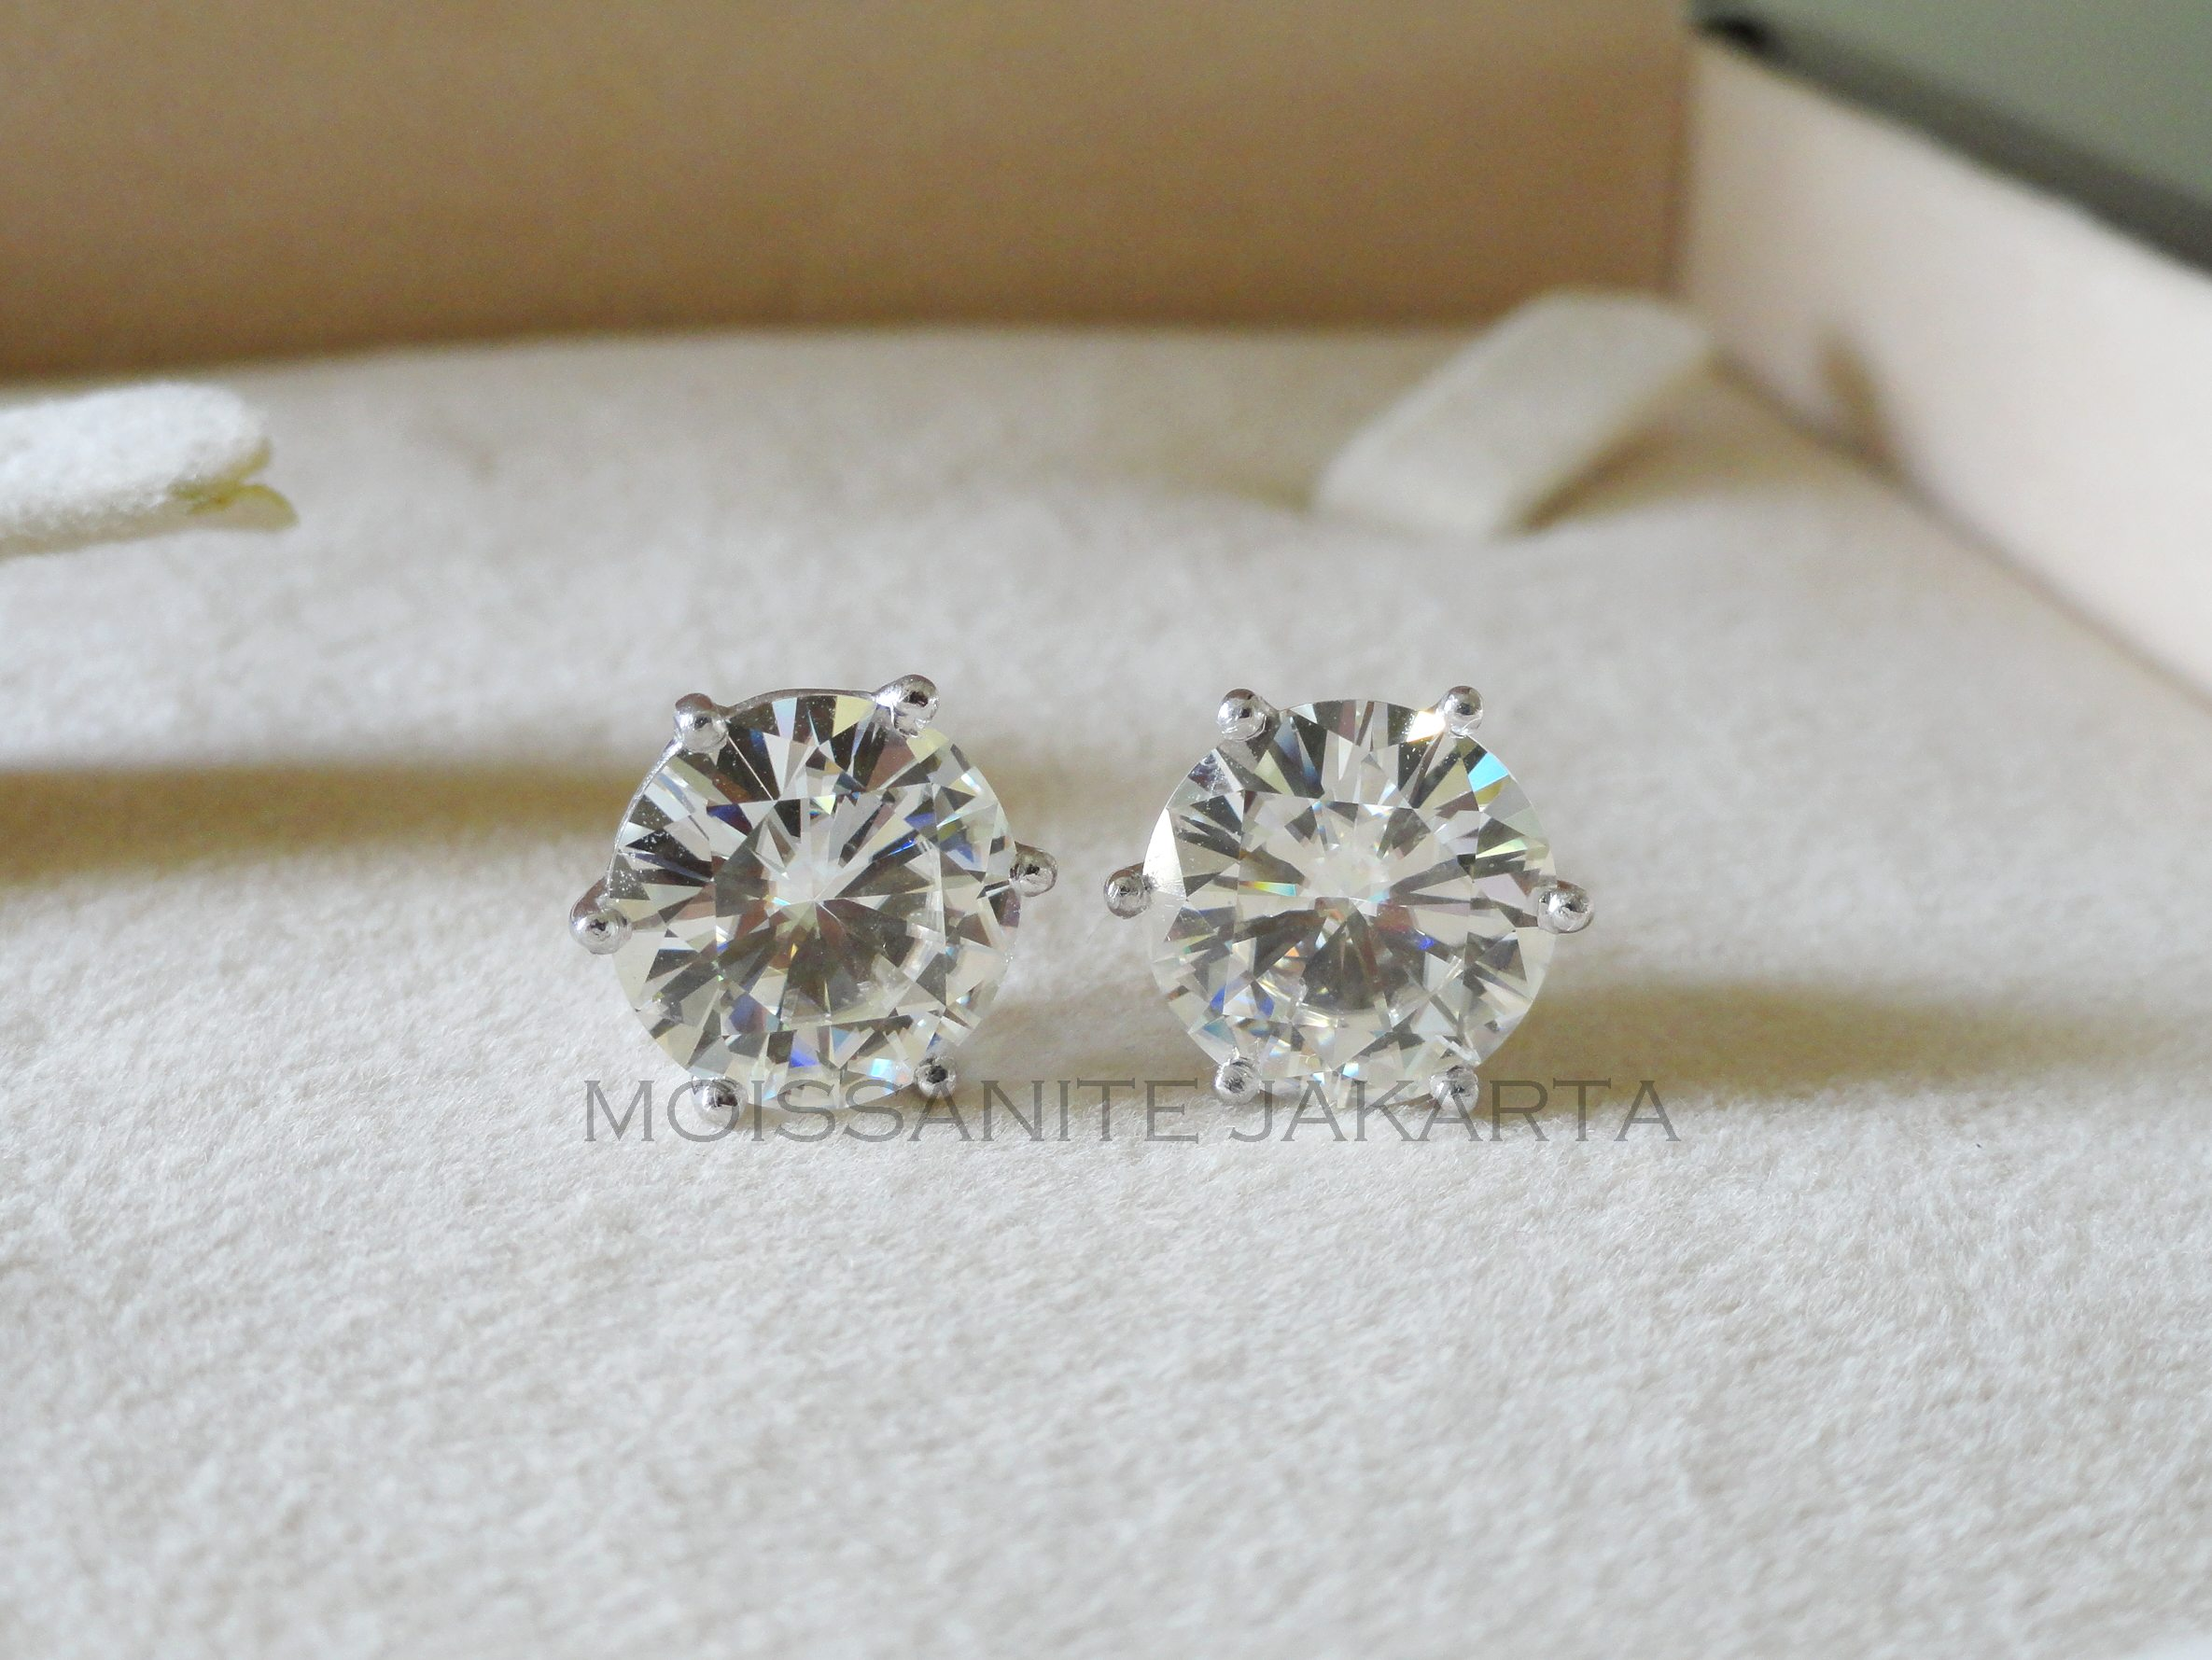 engagement diamonds concept pictures oval earrings of ring scarlett princess fresh bride moissanite wedding lovely ideas